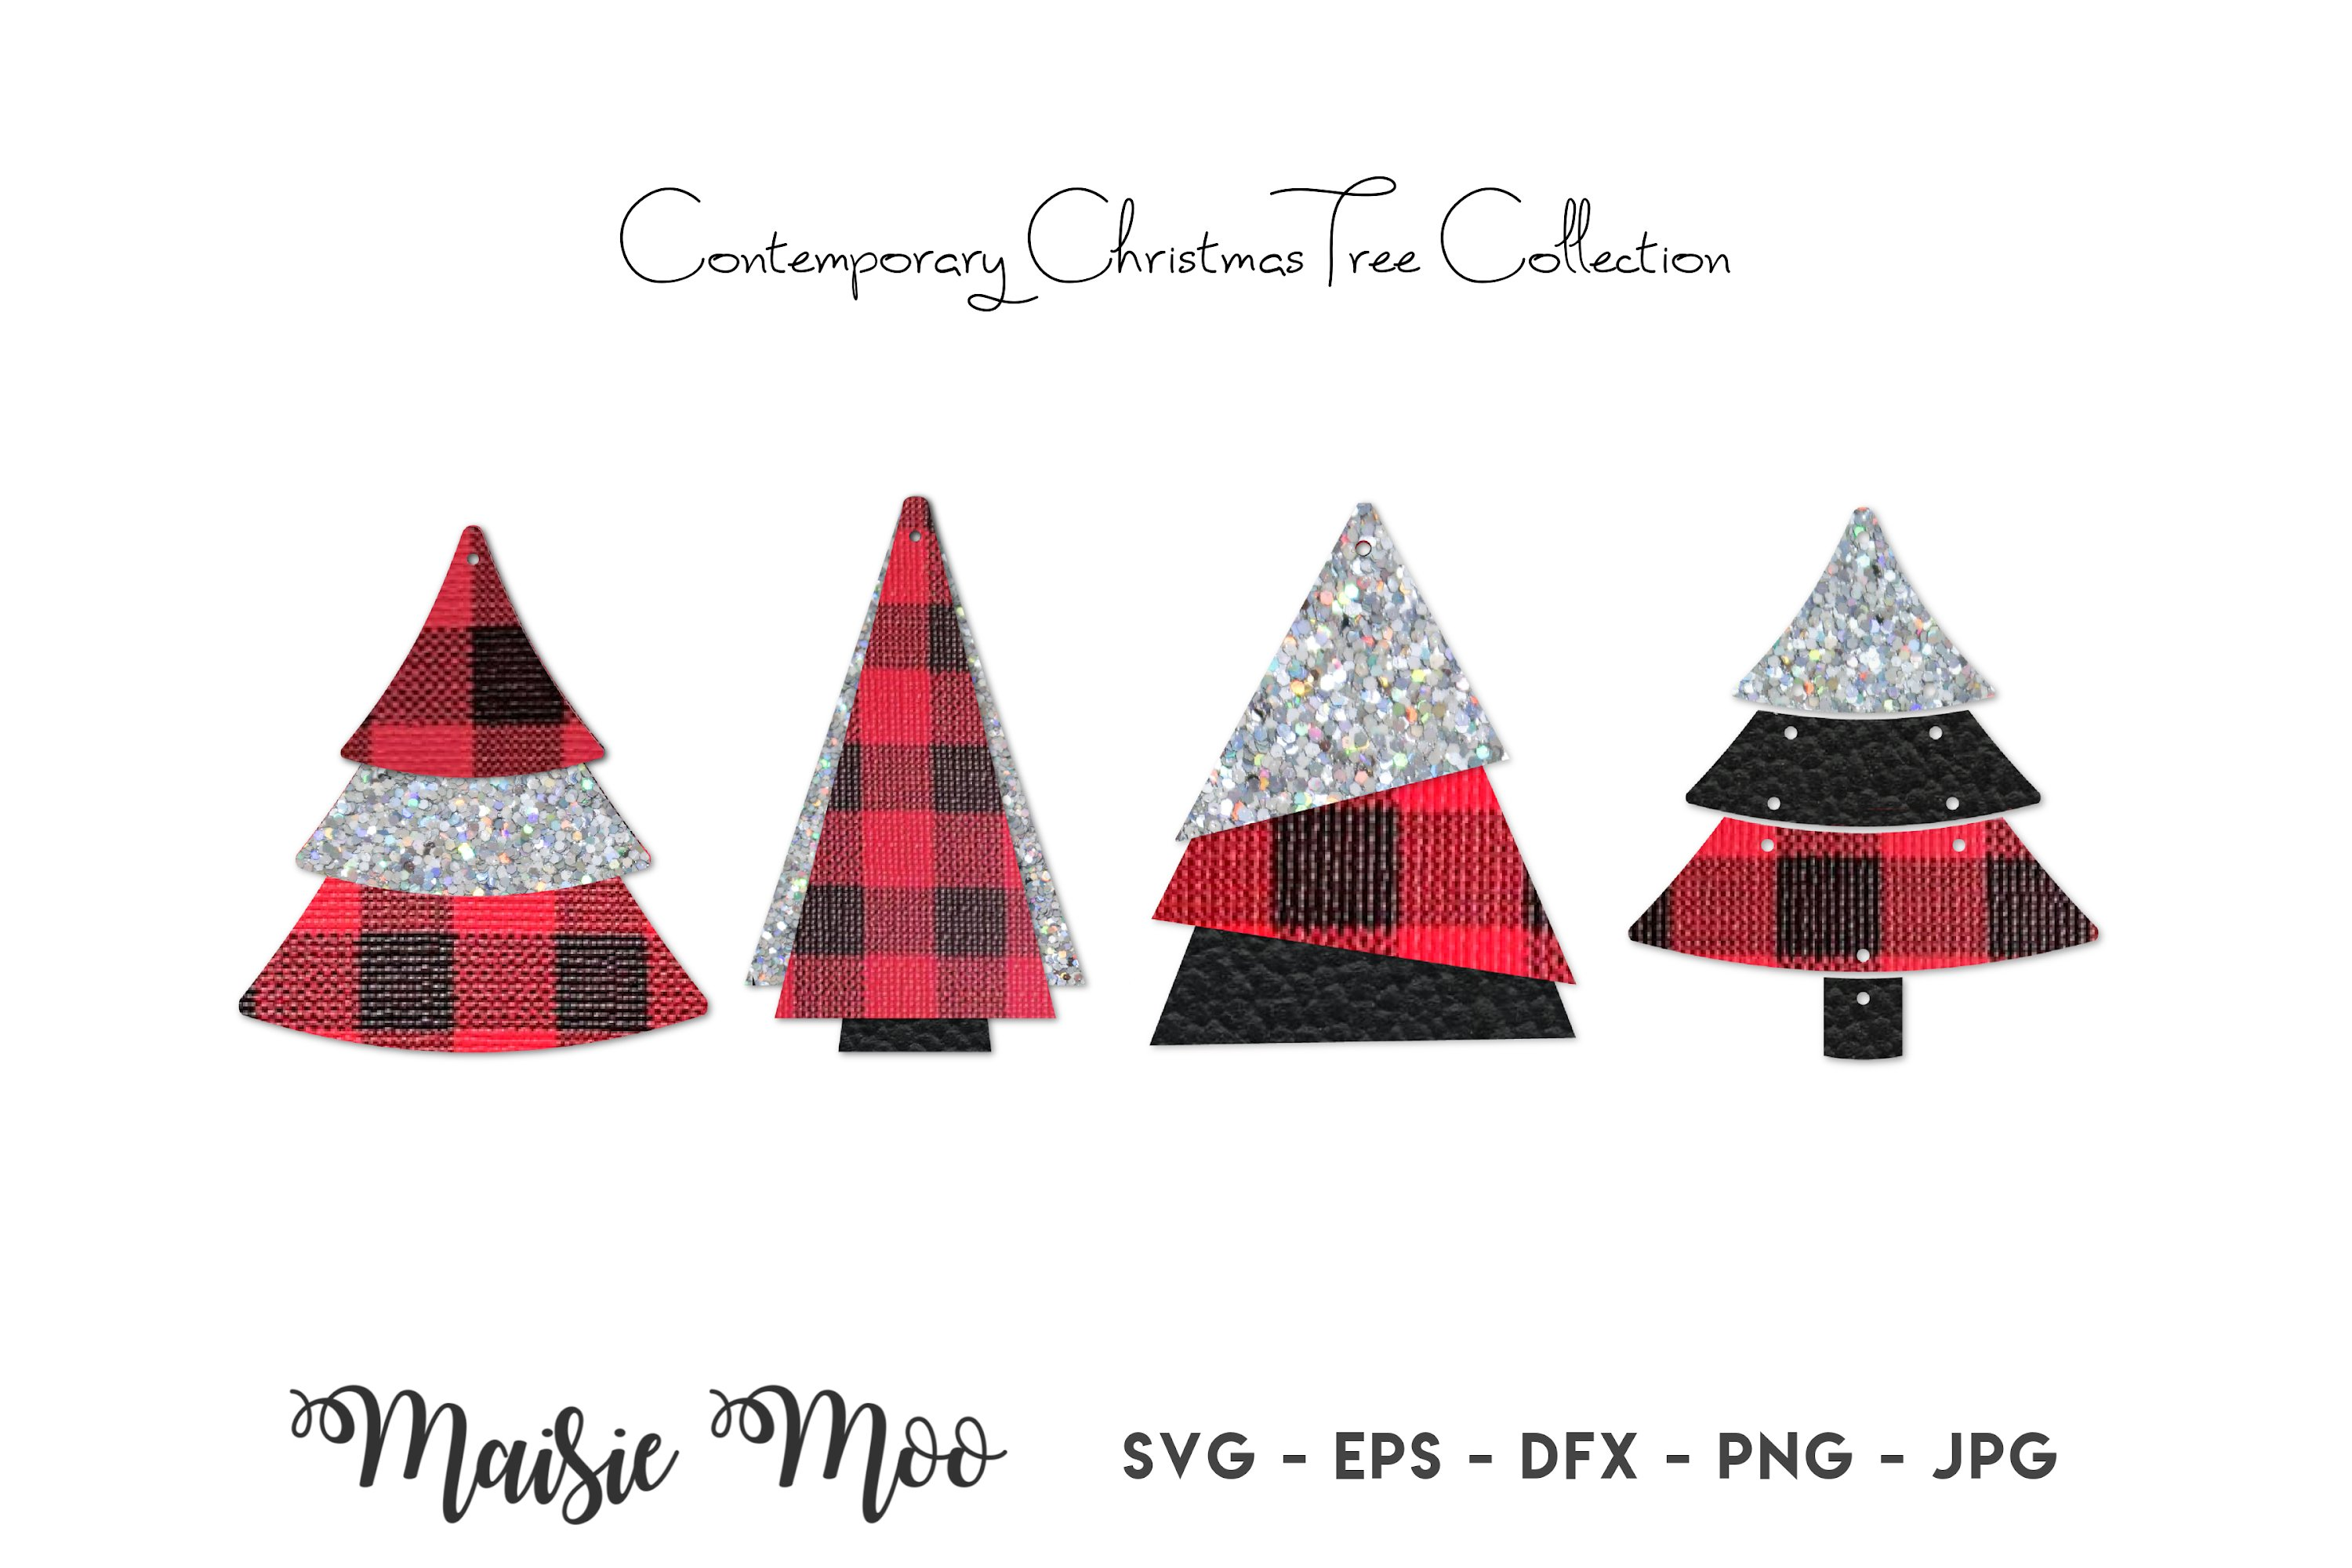 Christmas Earring Svg Faux Leather Tree Earrings Templates 1005125 Other Design Bundles